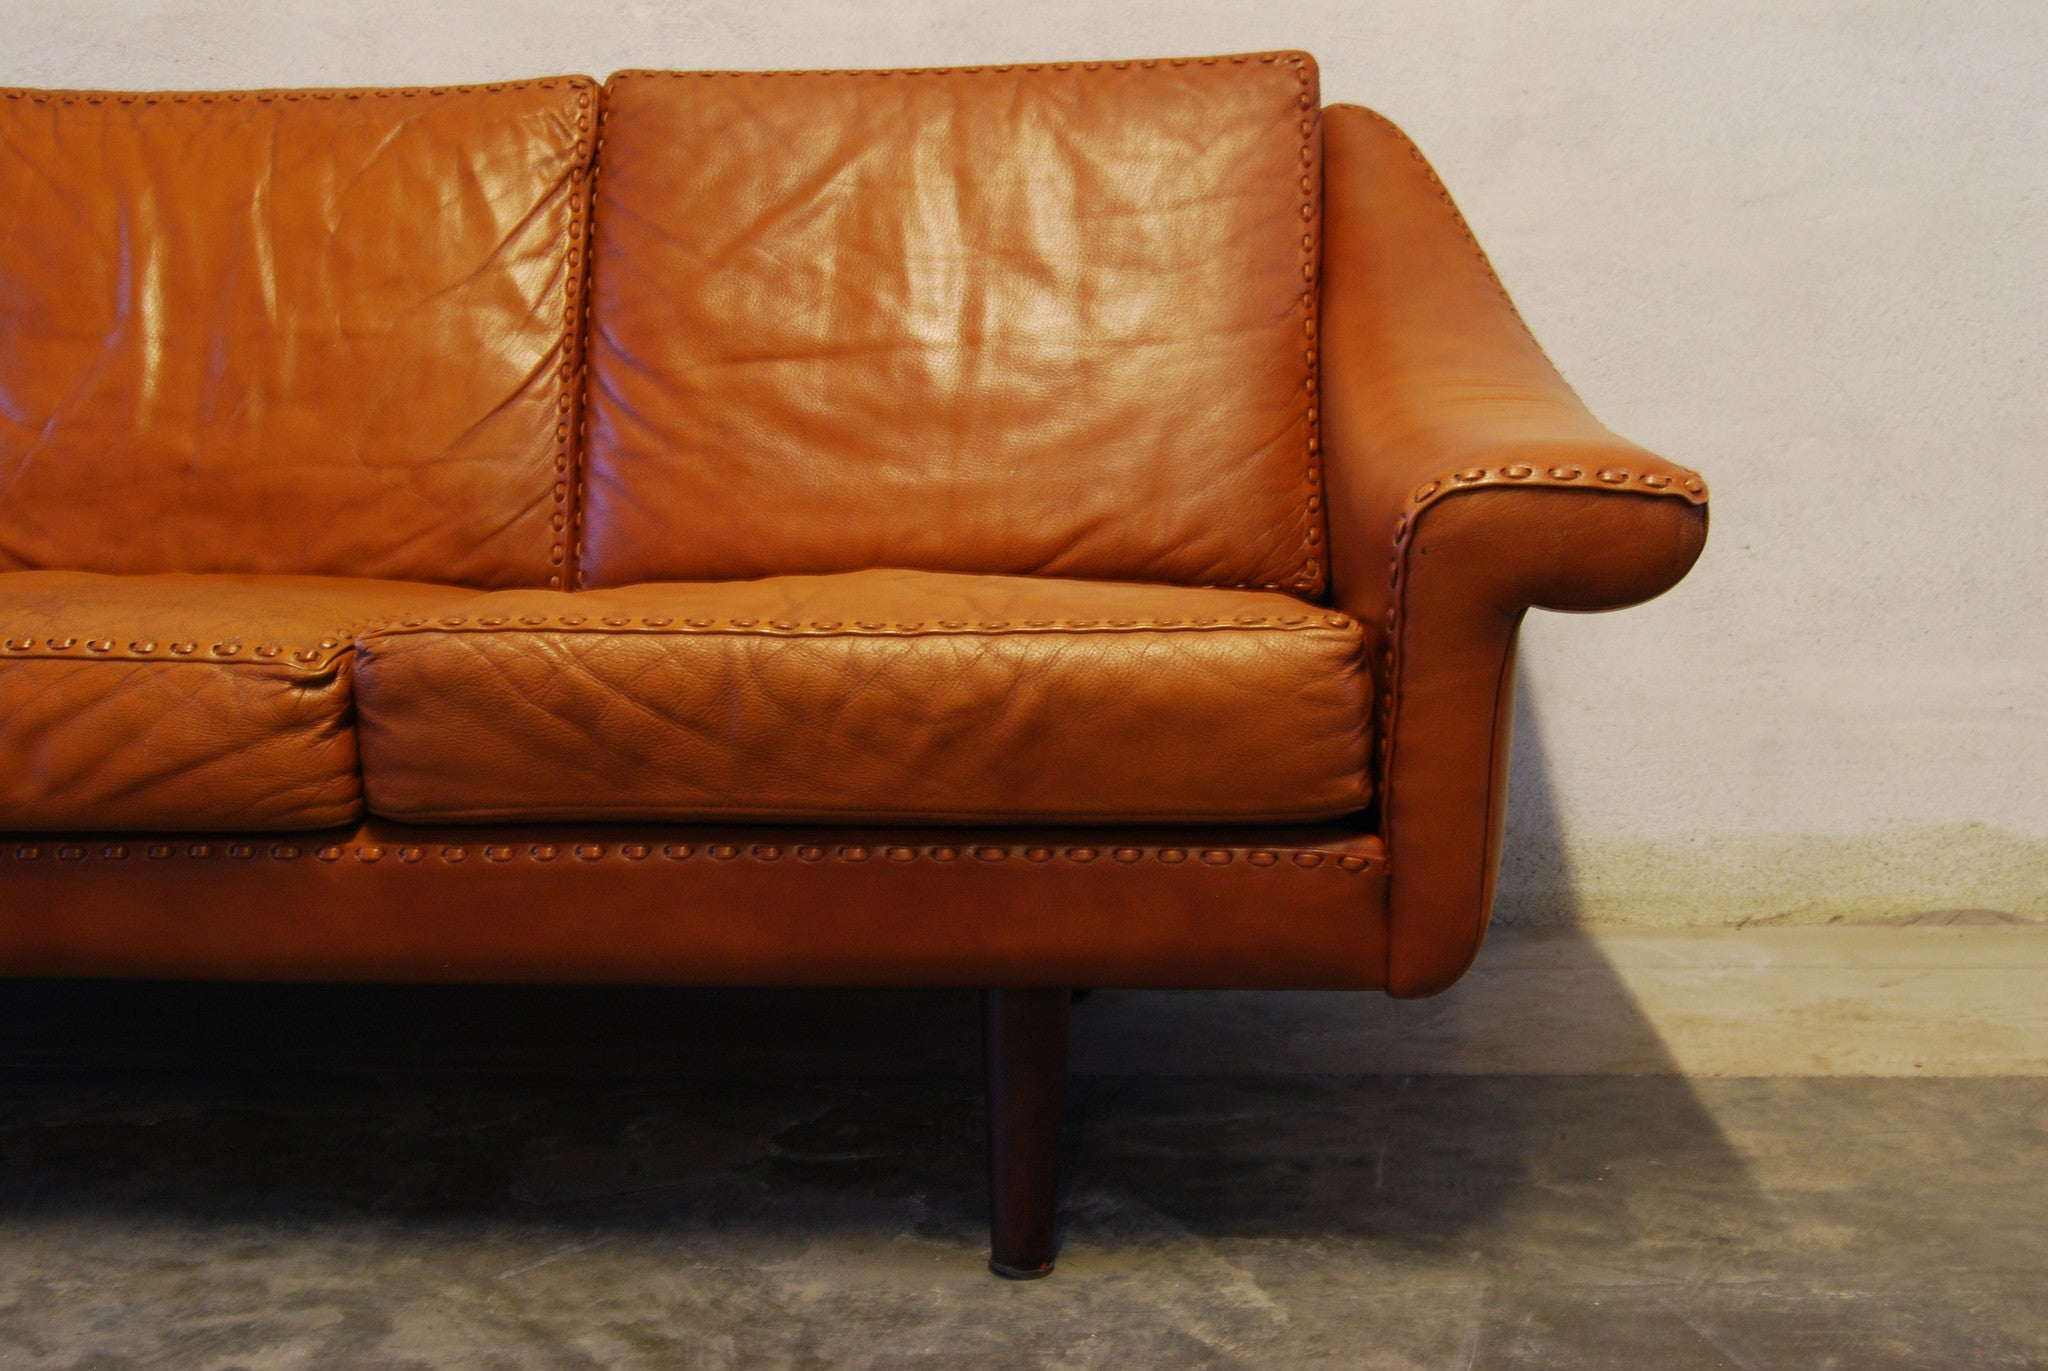 Chase & Sorensen 1970s three seat leather sofa